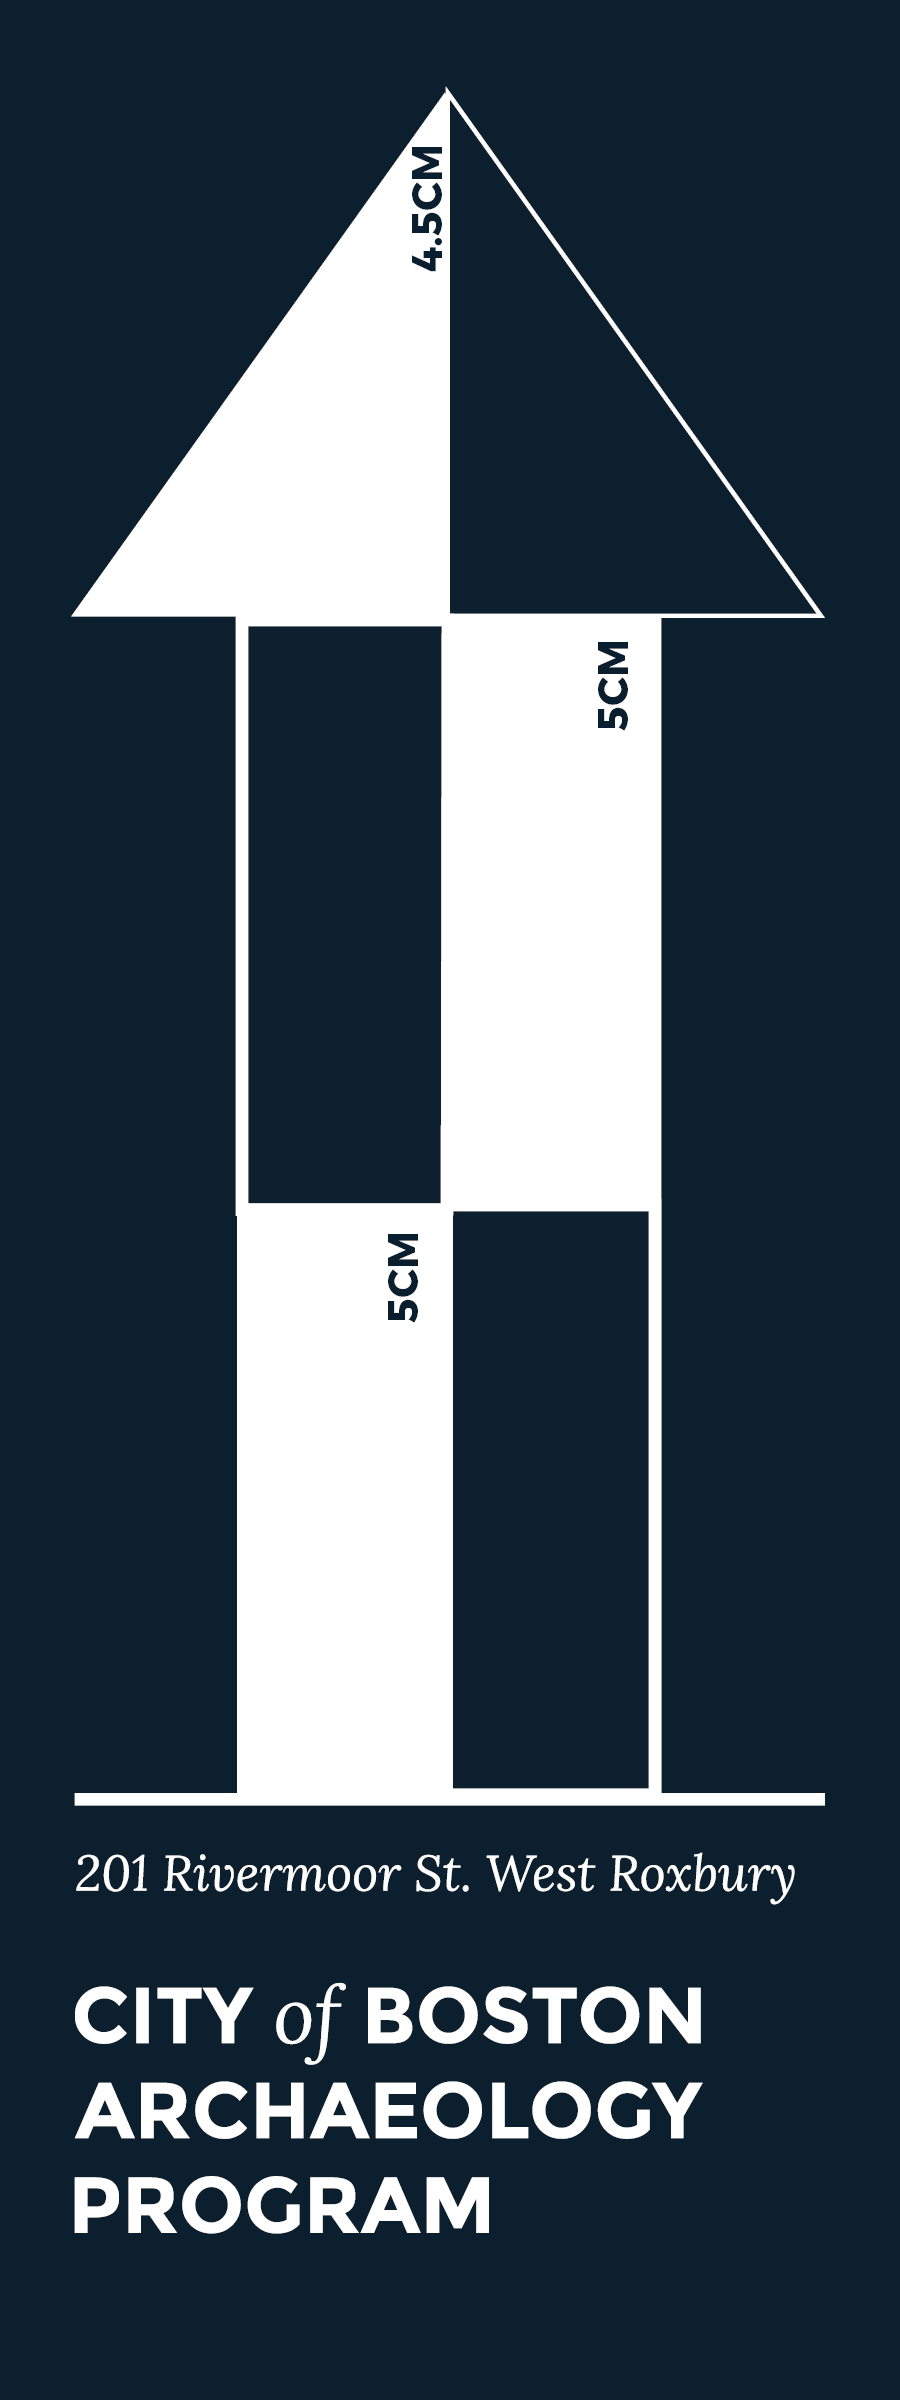 bookmarks21.png